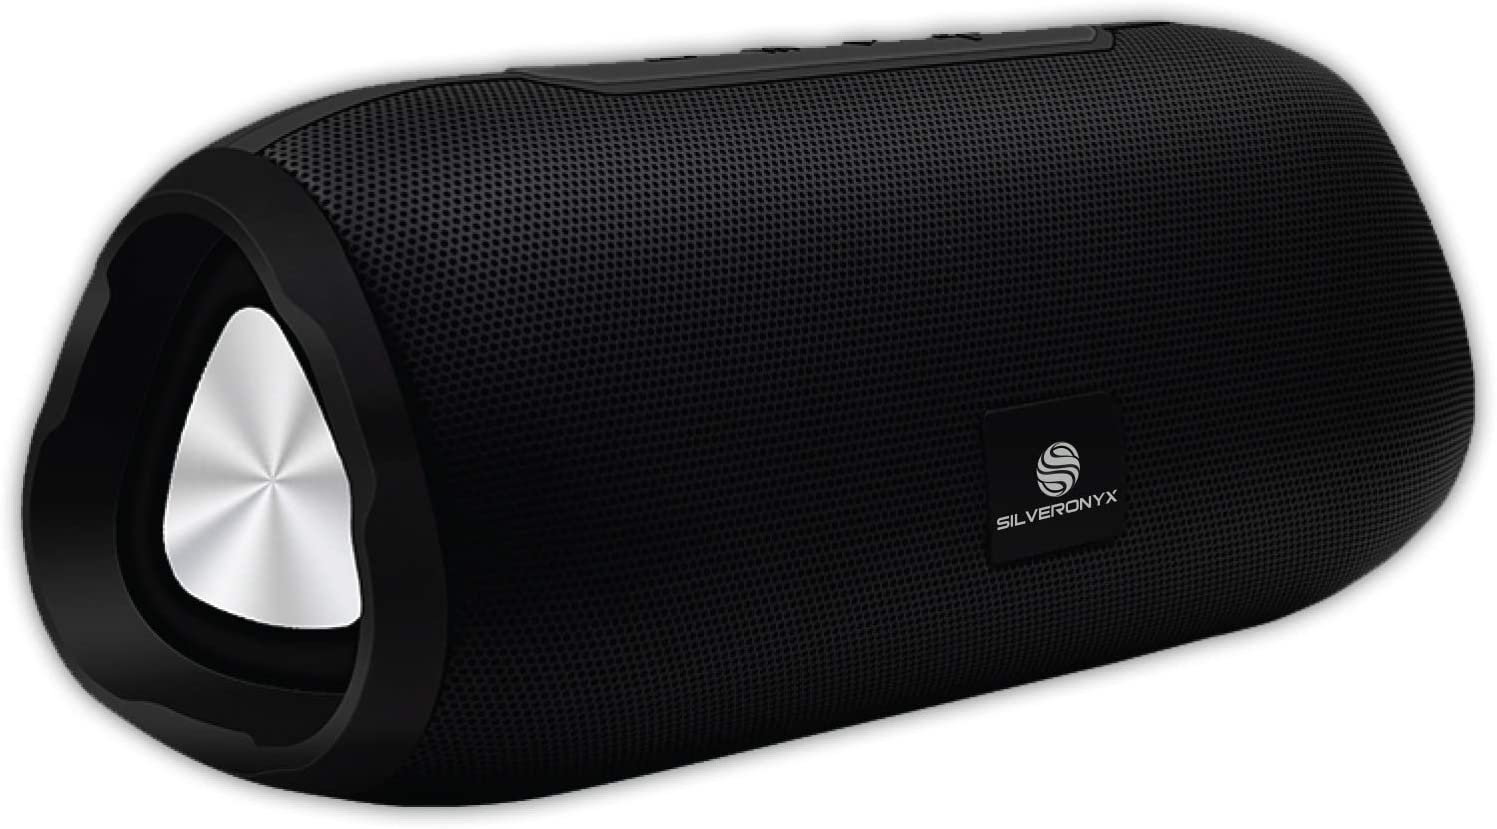 SilverOnyx Bluetooth Speakers Portable Wireless Speaker, Crystal Clear Stereo Sound, Rich Bass Subwoofer, Built-in Microphone, Long Range, Aux Cable Input, for Home and Travel - Black